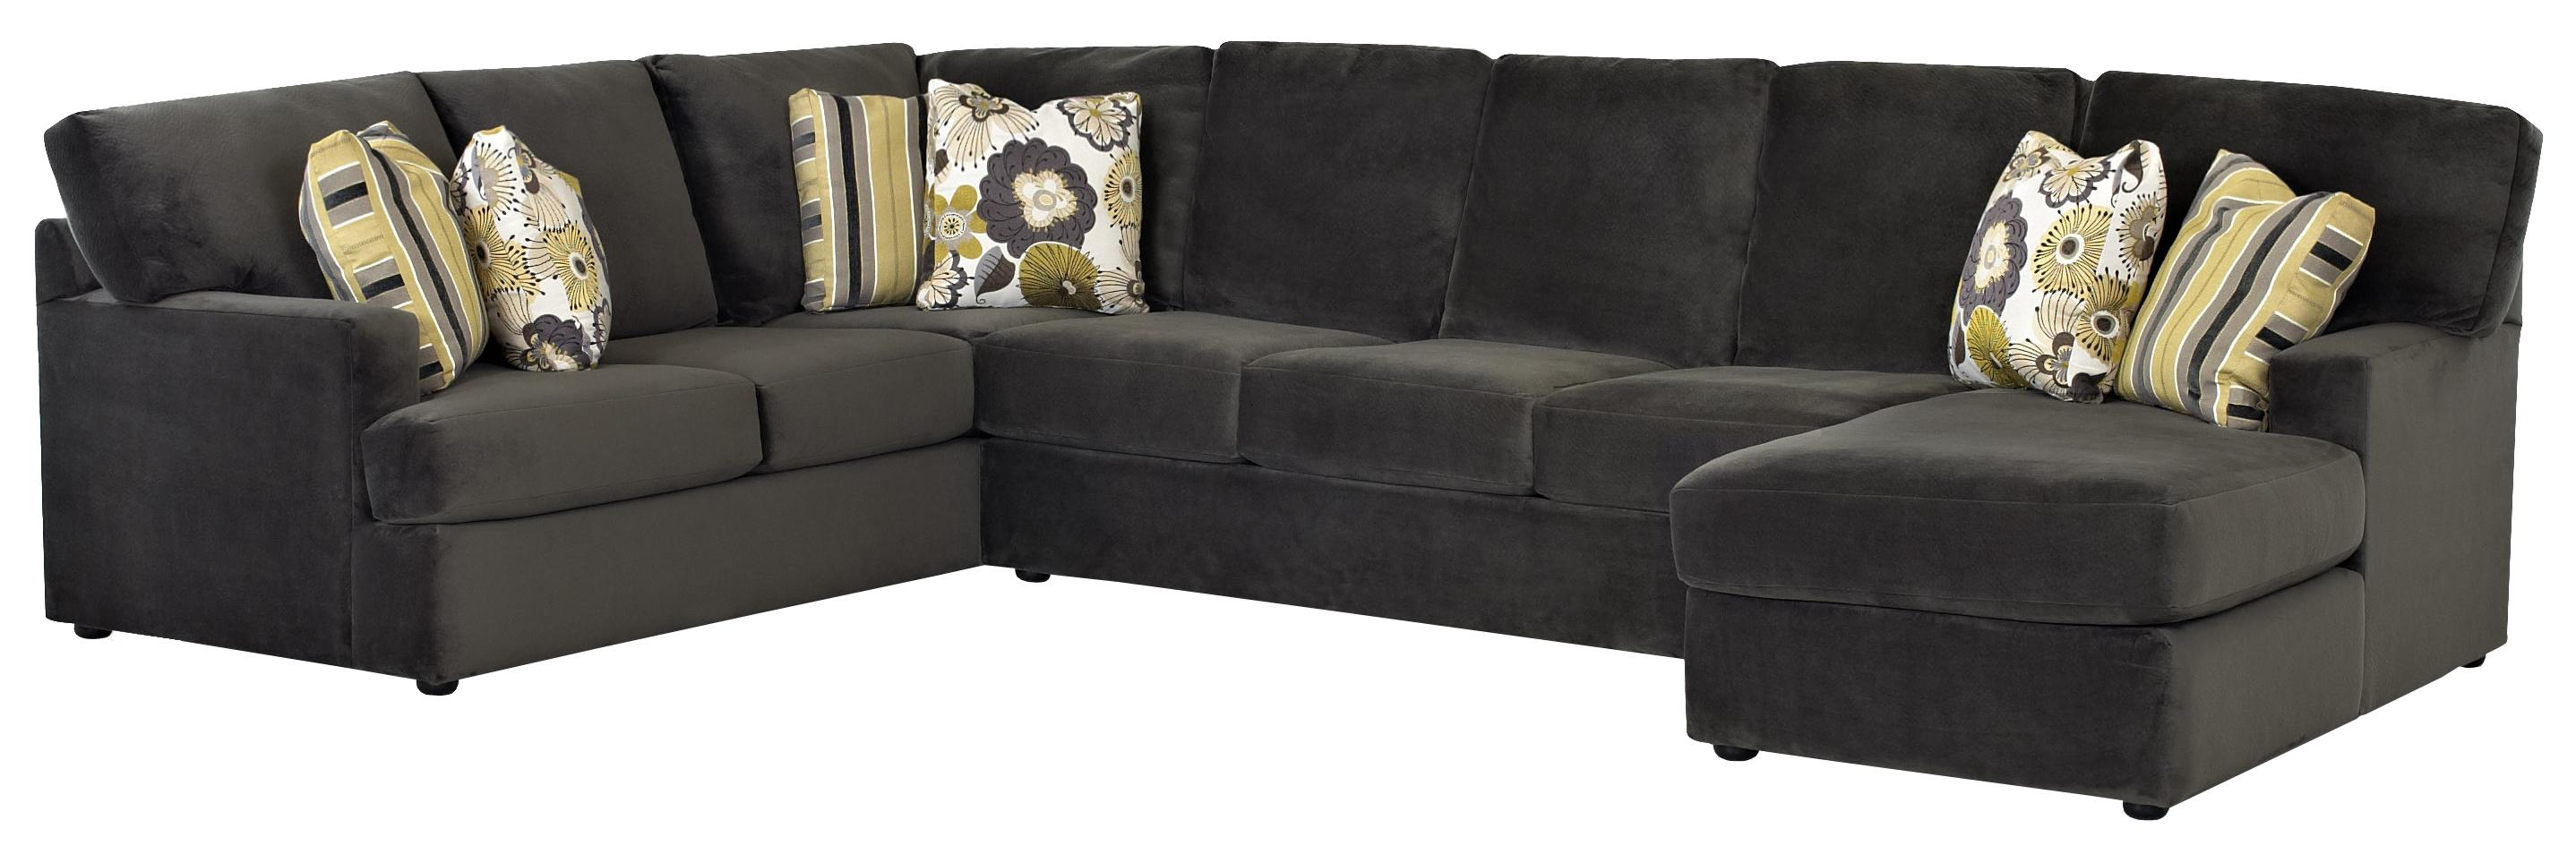 Klaussner Maclin K91500 Sectional Sofa With Right Side